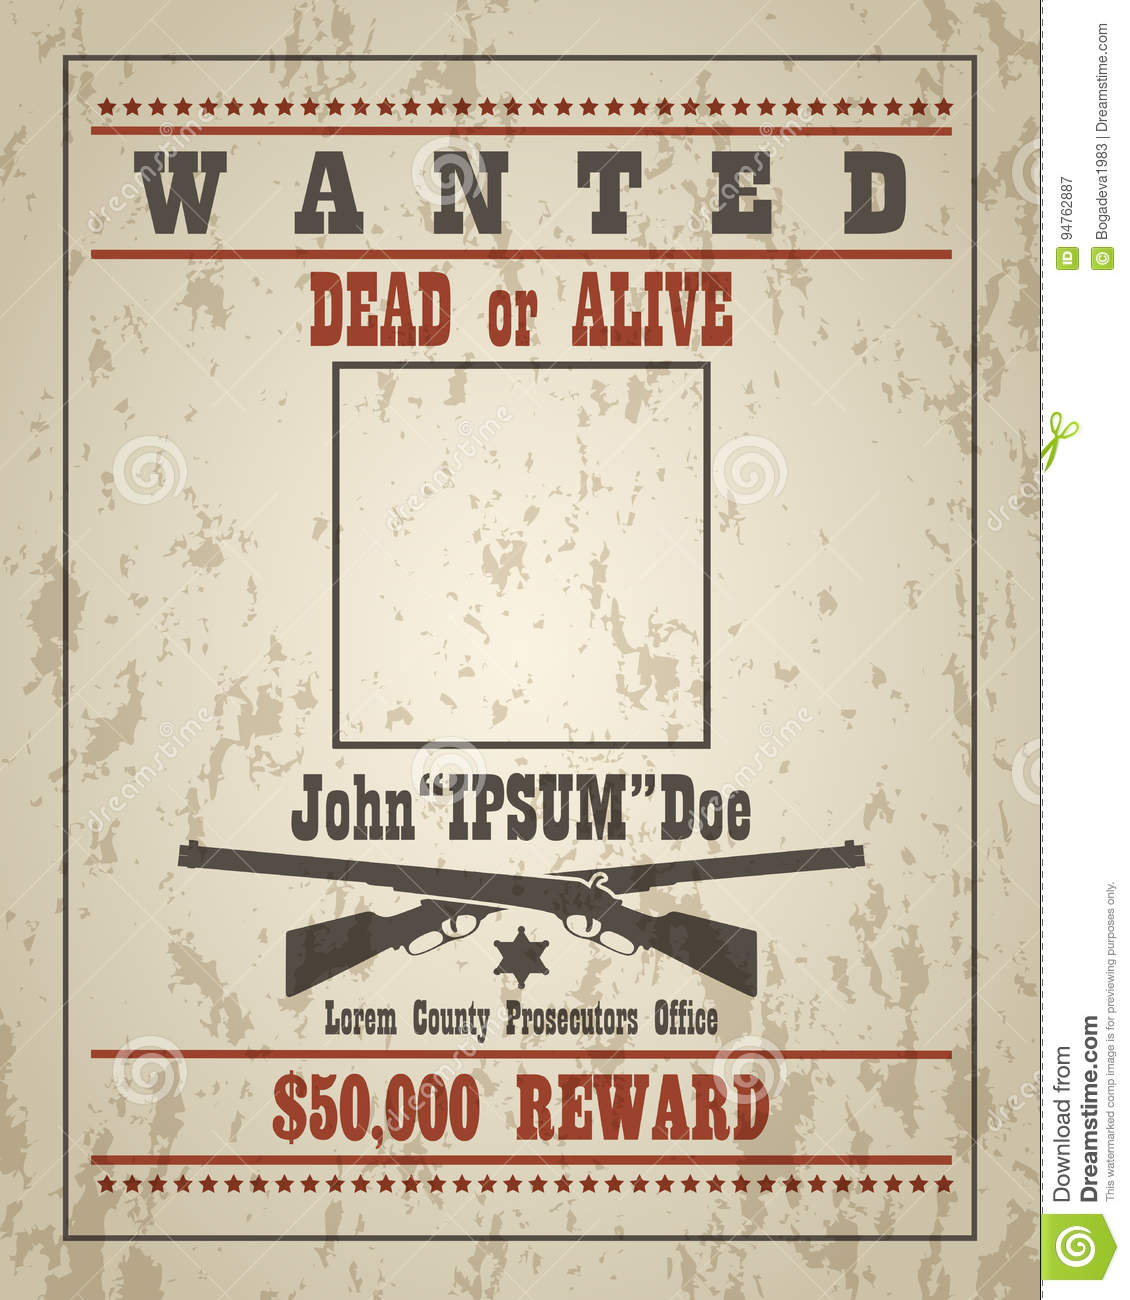 Retro wanted poster template stock vector image 94762887 for Wanted dead or alive poster template free